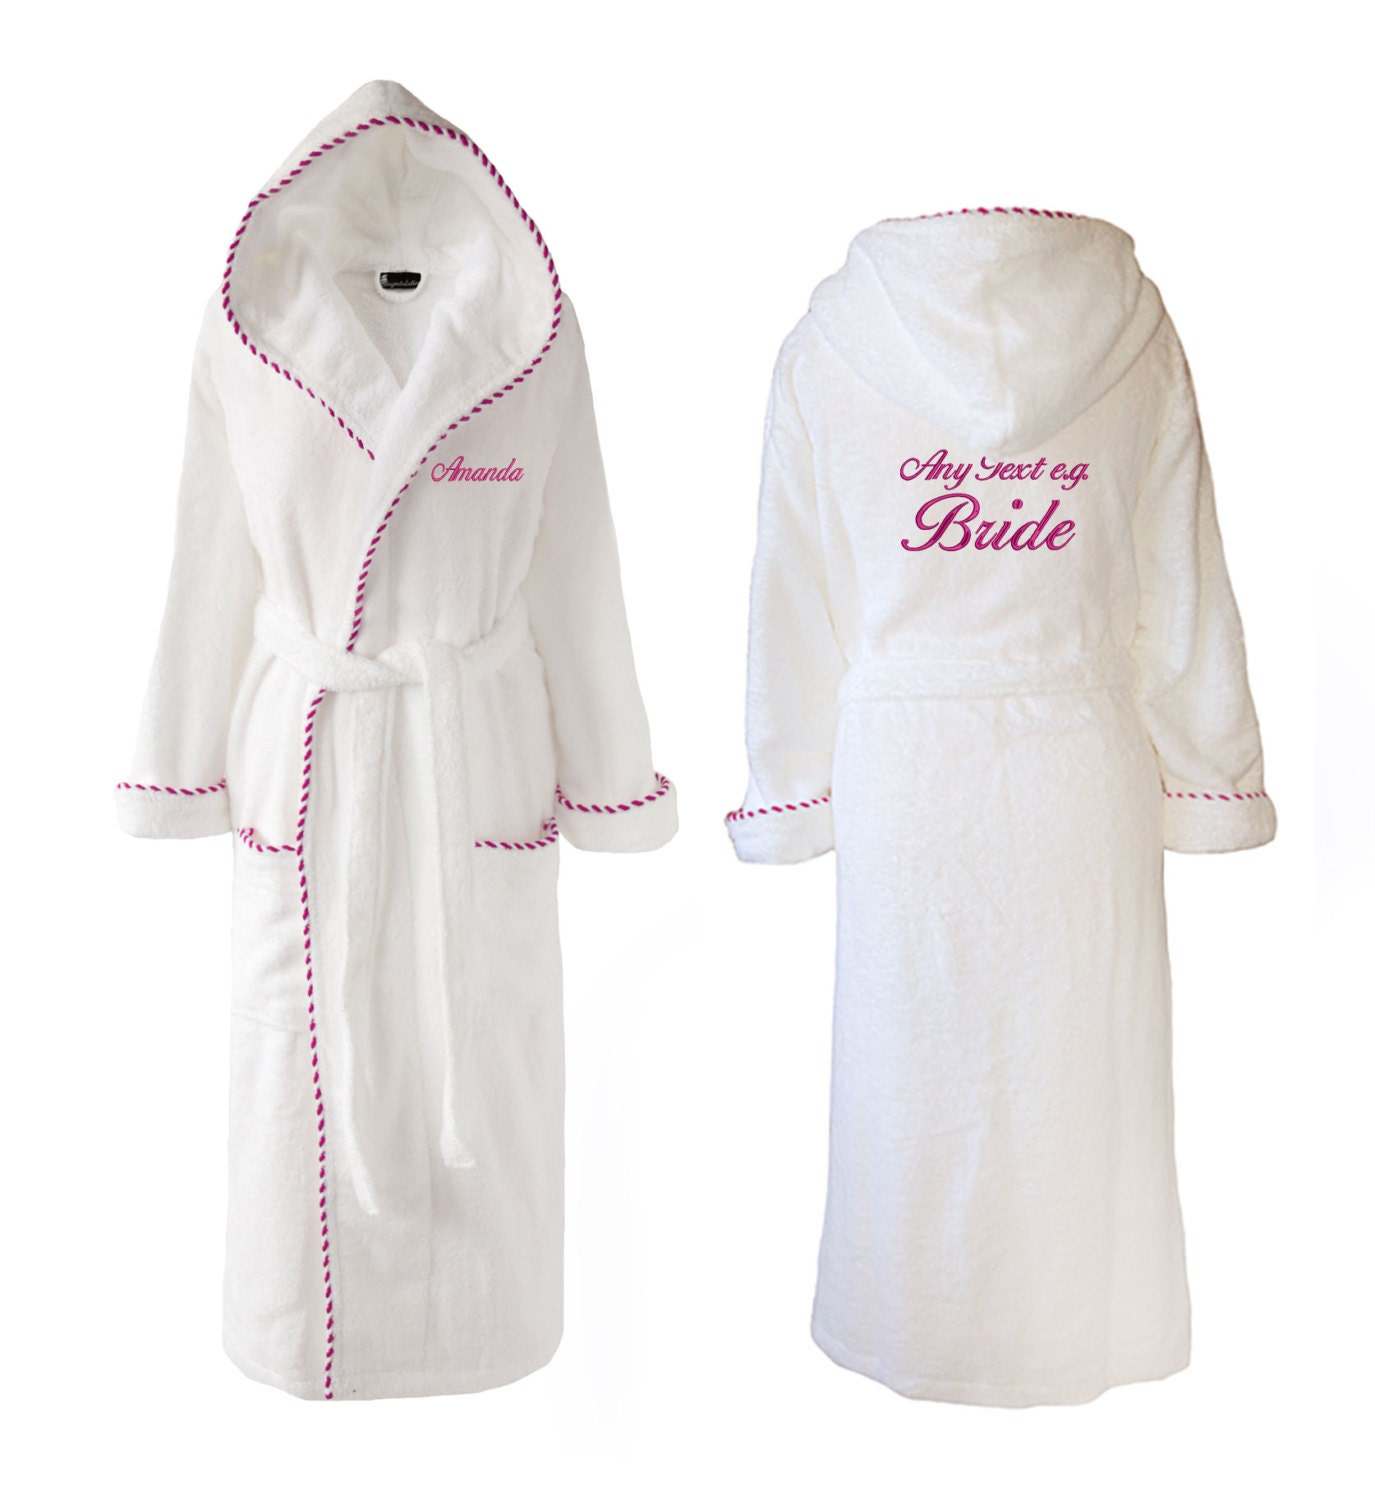 Personalised Wedding Towelling Dressing Gown Hooded Towelling Dressing Gown White with Pink trim Gift for Her Mum Bride